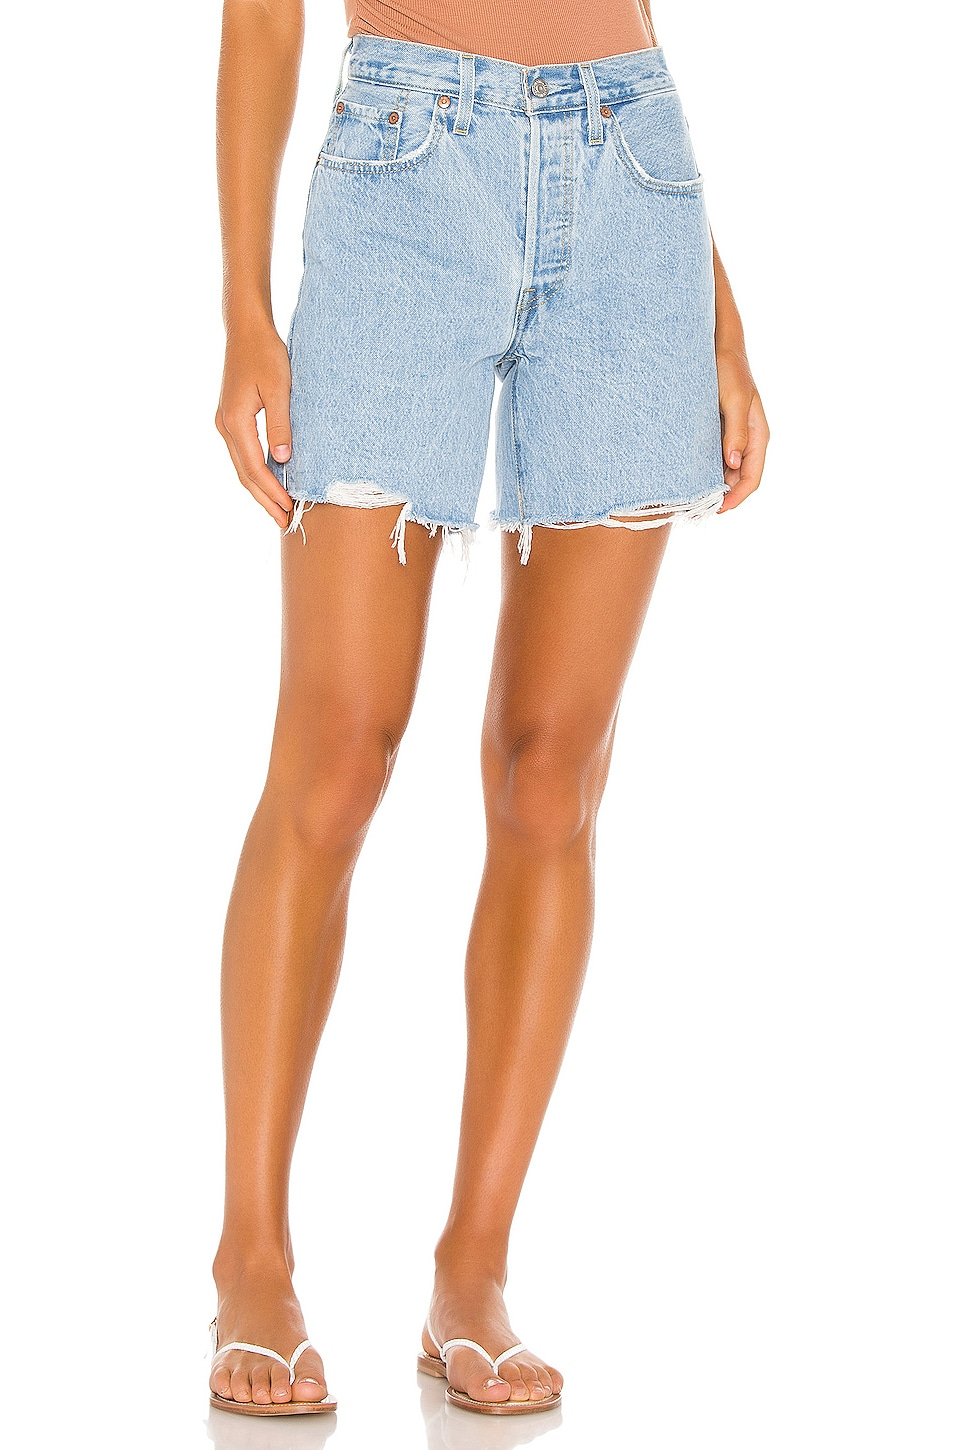 501 Mid Thigh Short             LEVI'S                                                                                                       CA$ 94.58 5